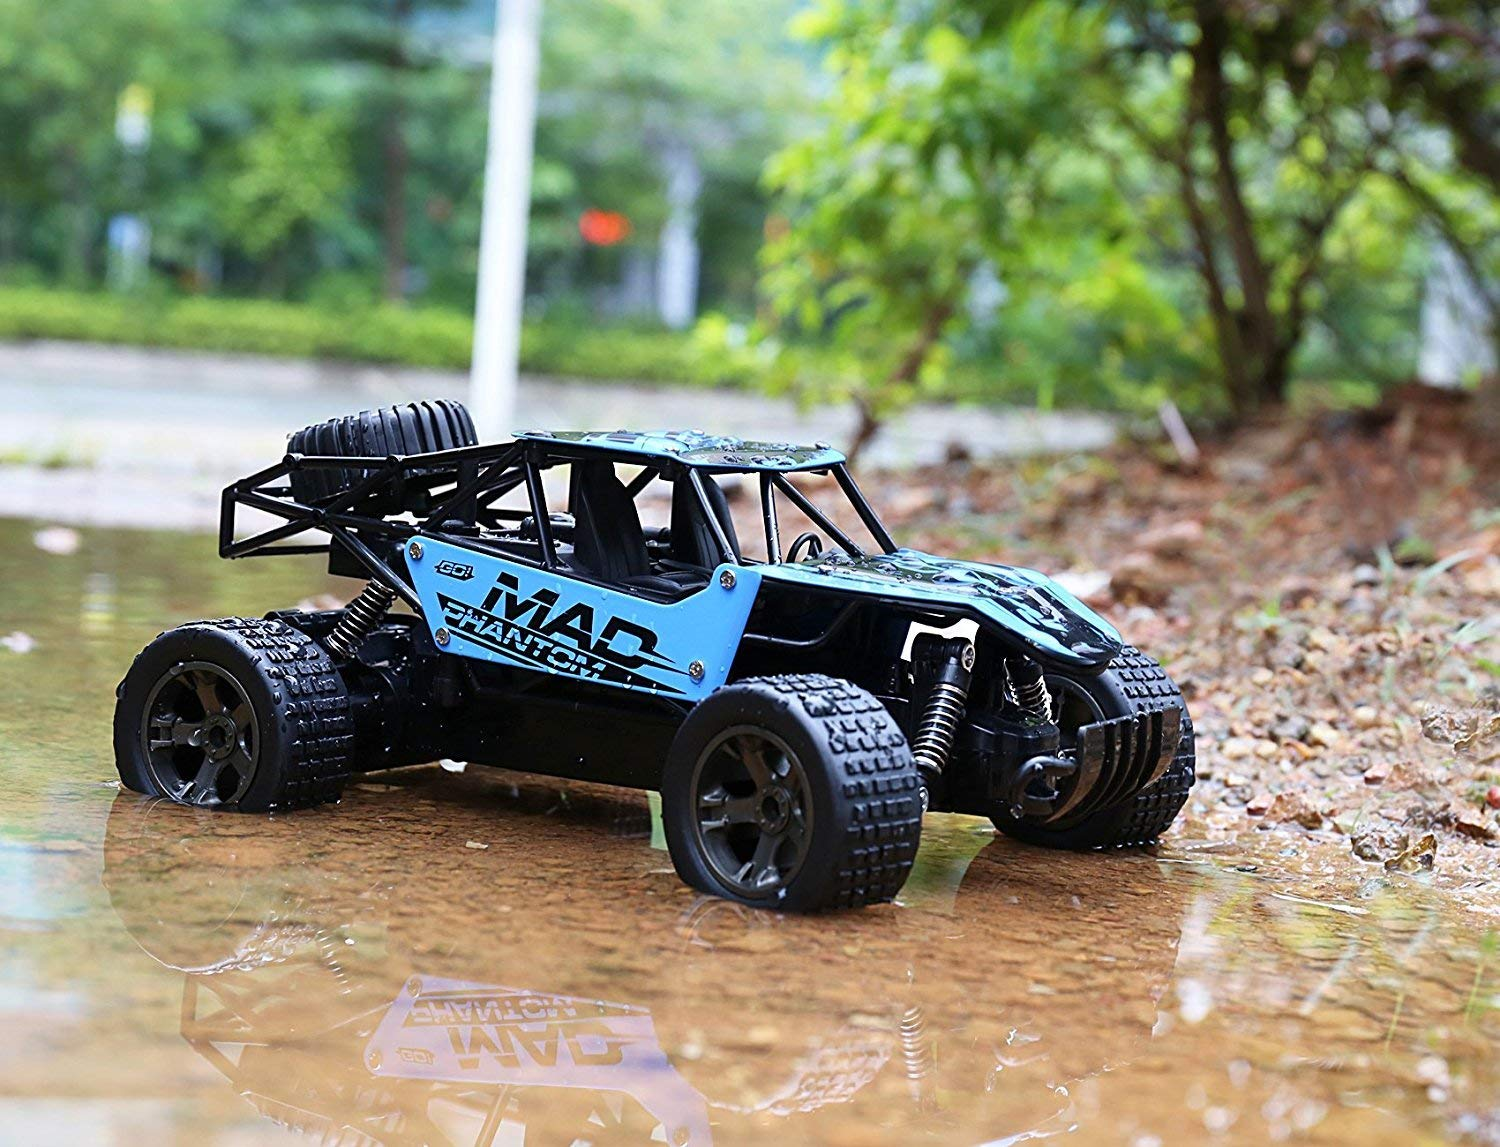 Best Remote Control Cars For 4 year old – TNCORE